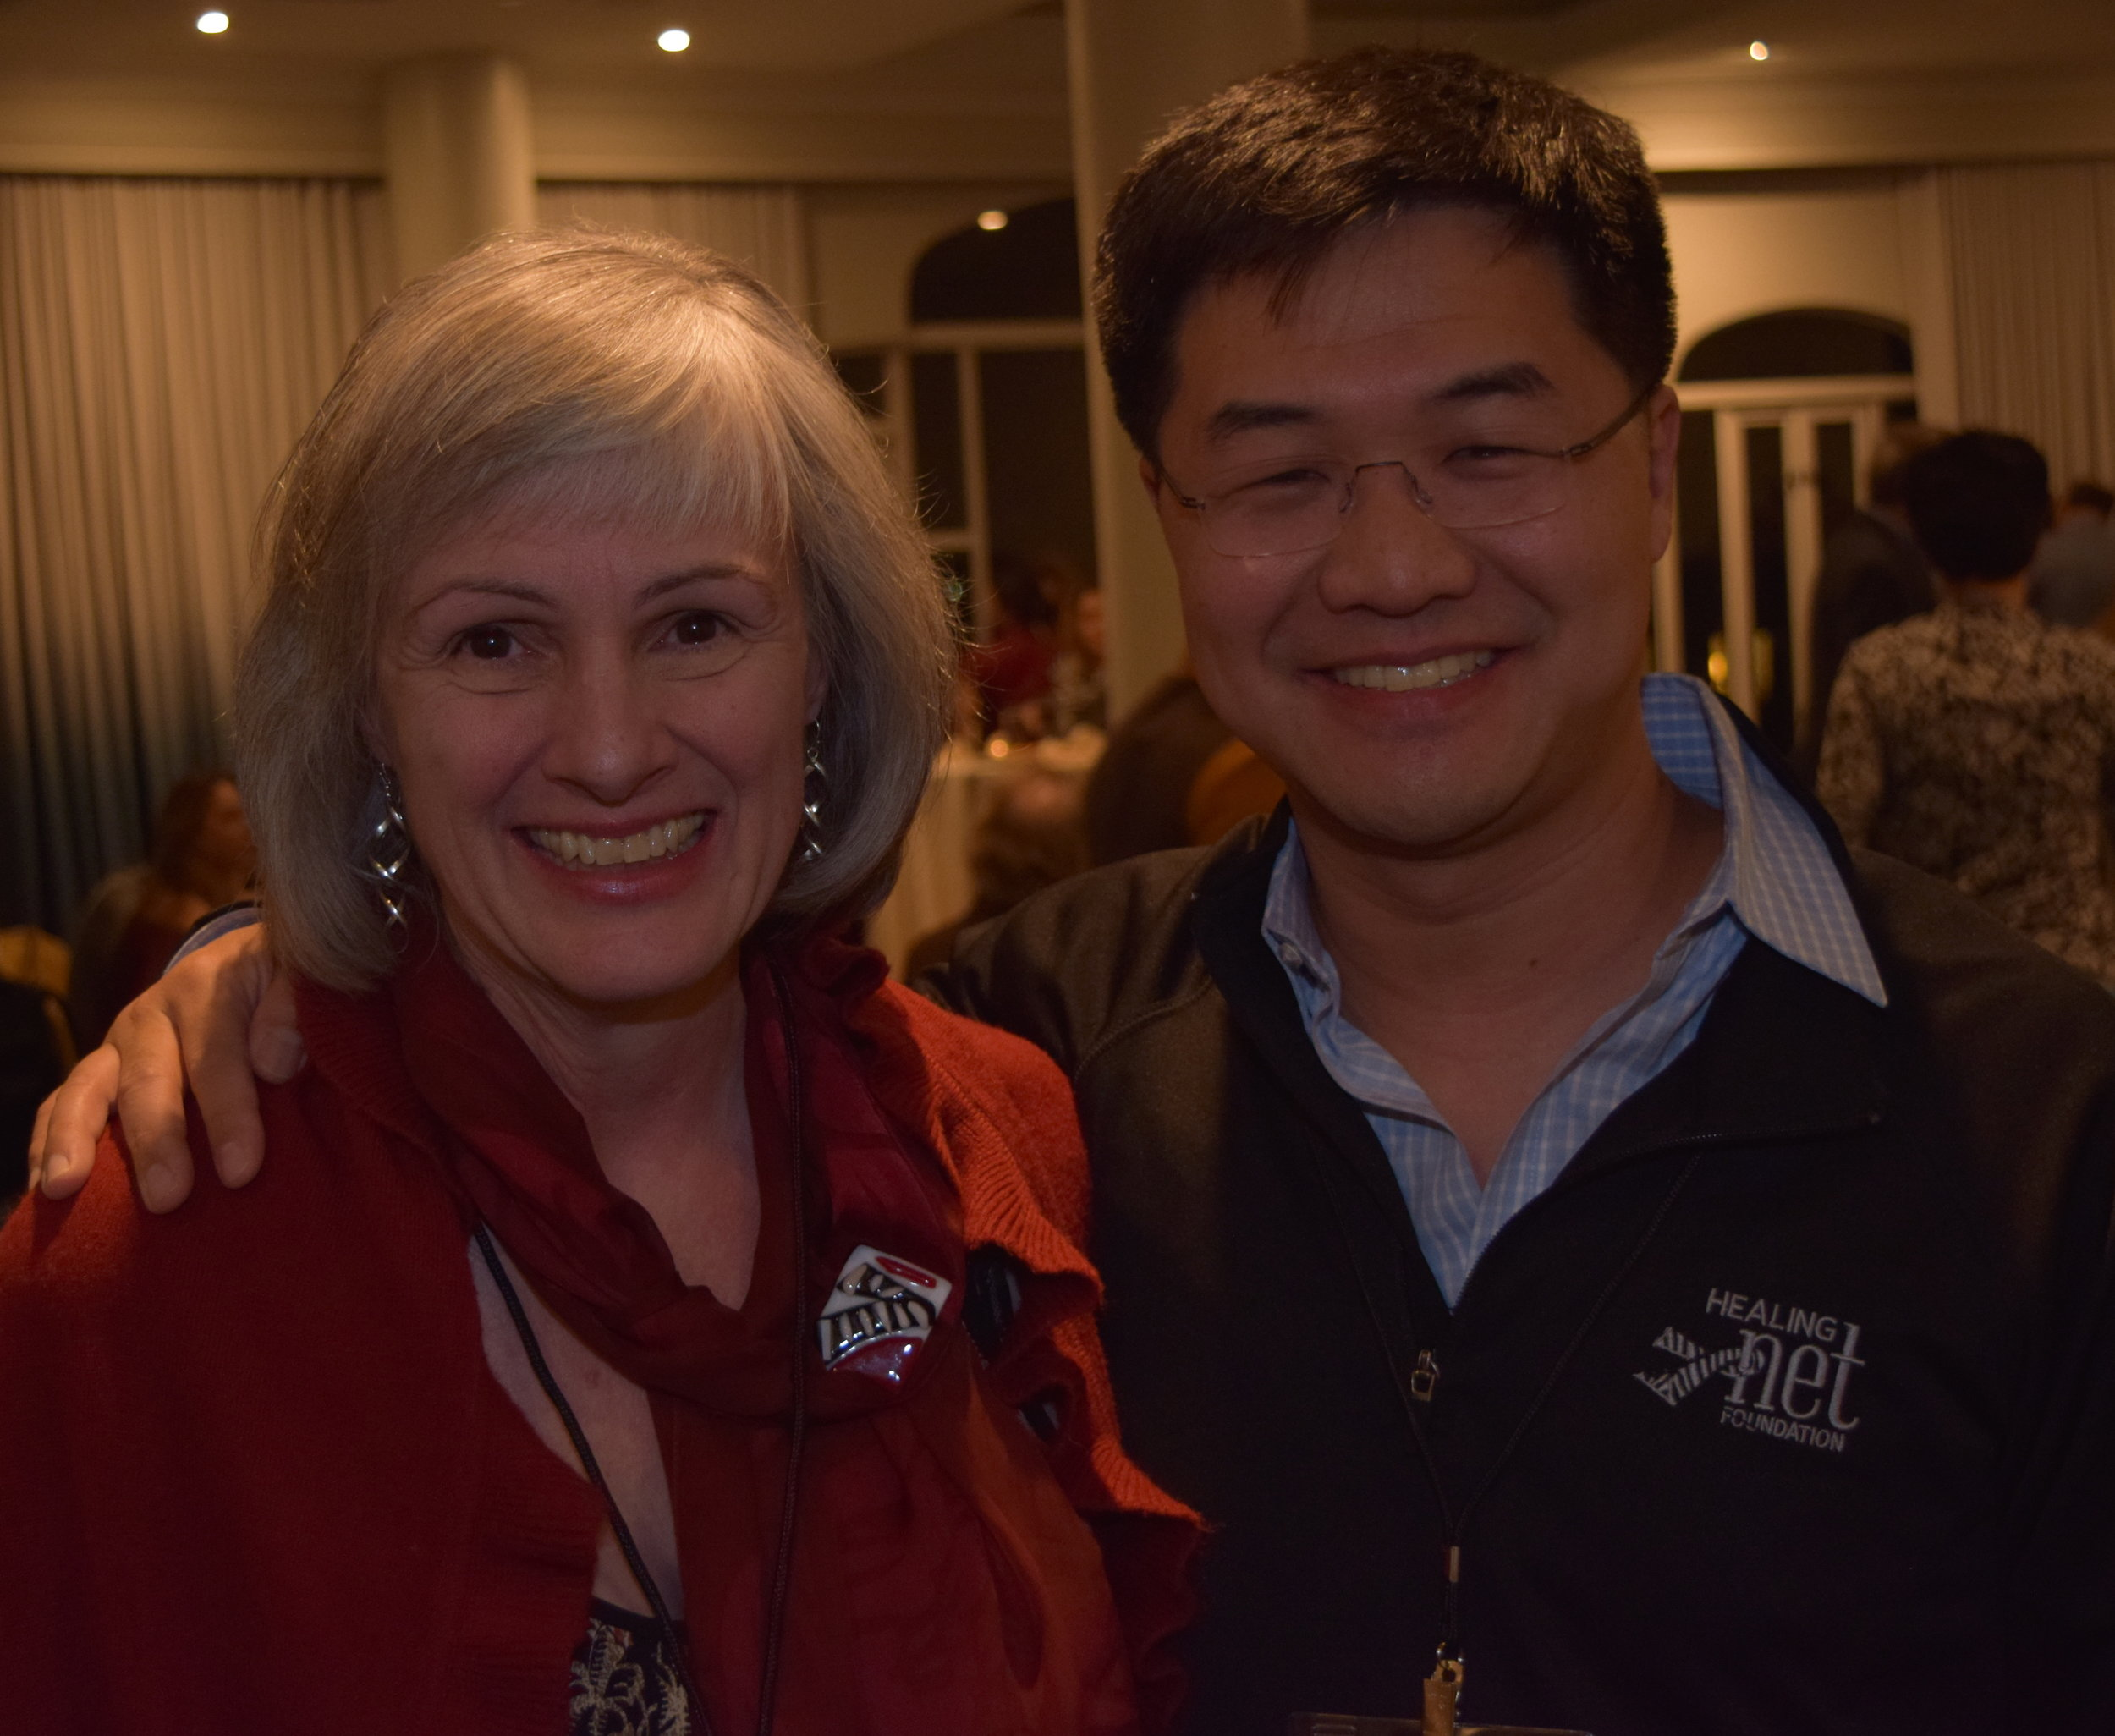 Cindy Lovelace and Eric Liu, Co-Founders Healing NET Foundation